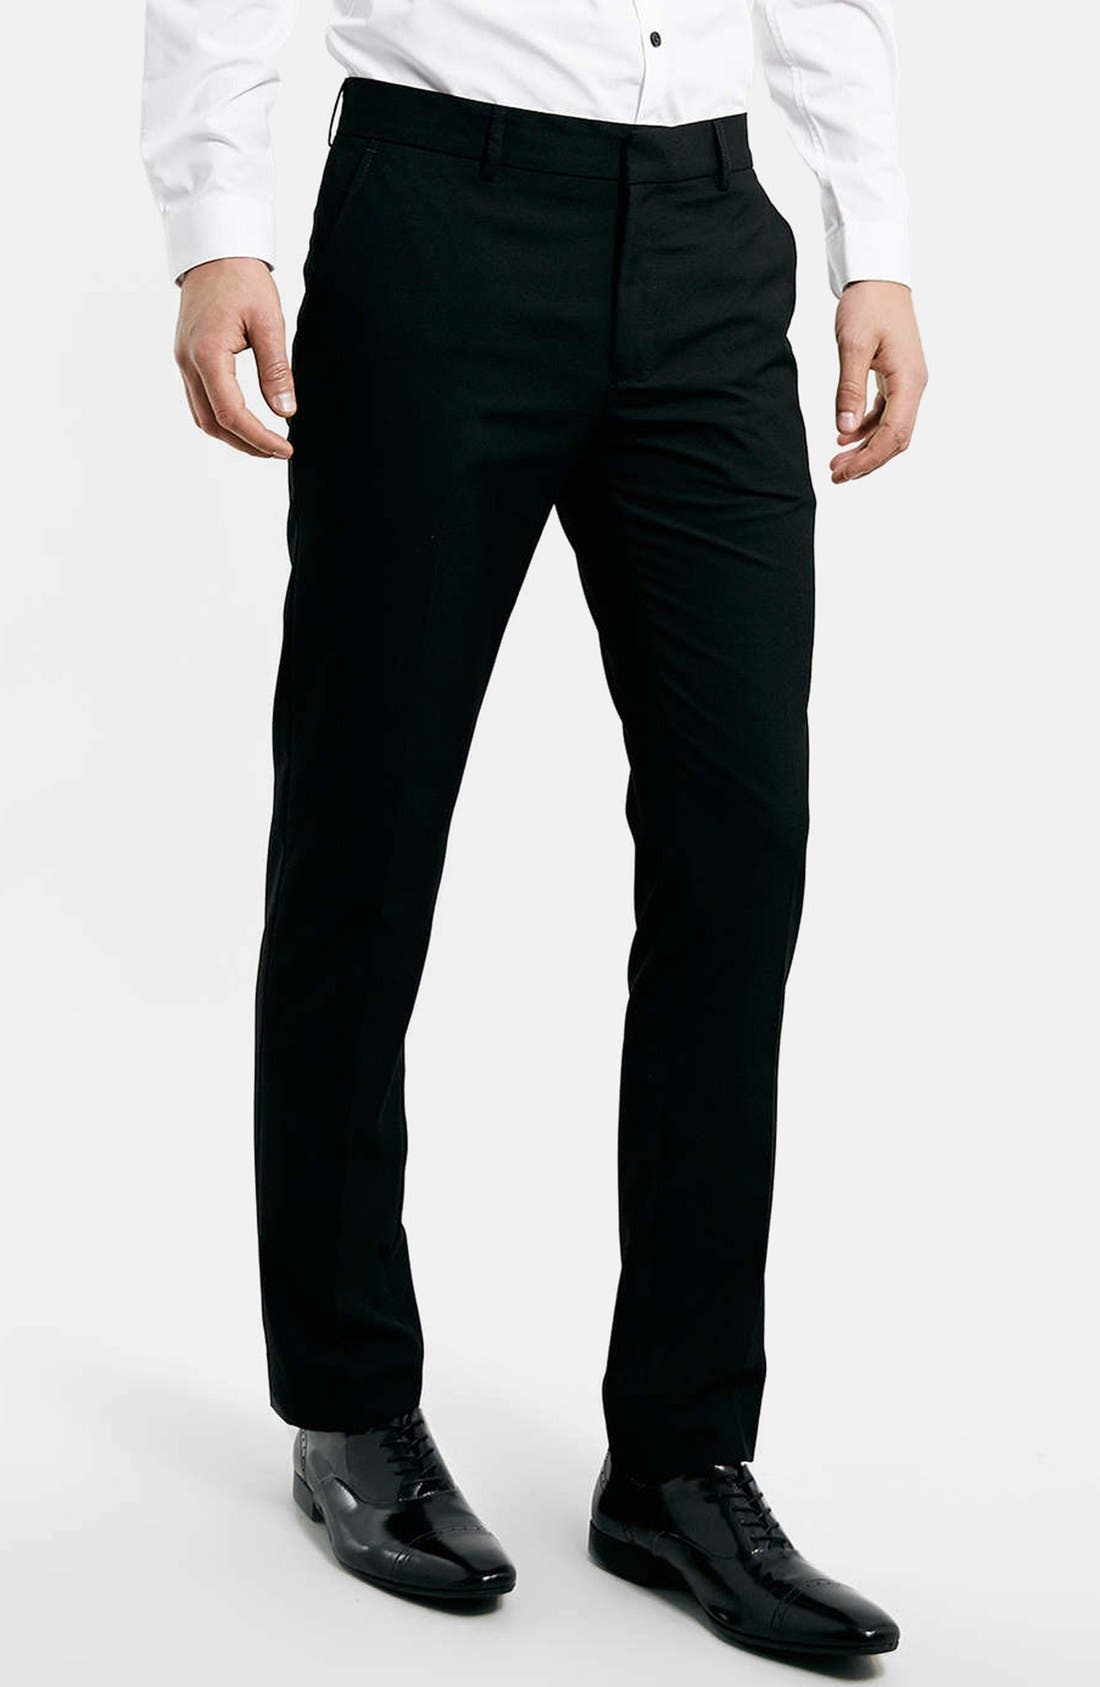 Topman Black Skinny Fit Trousers